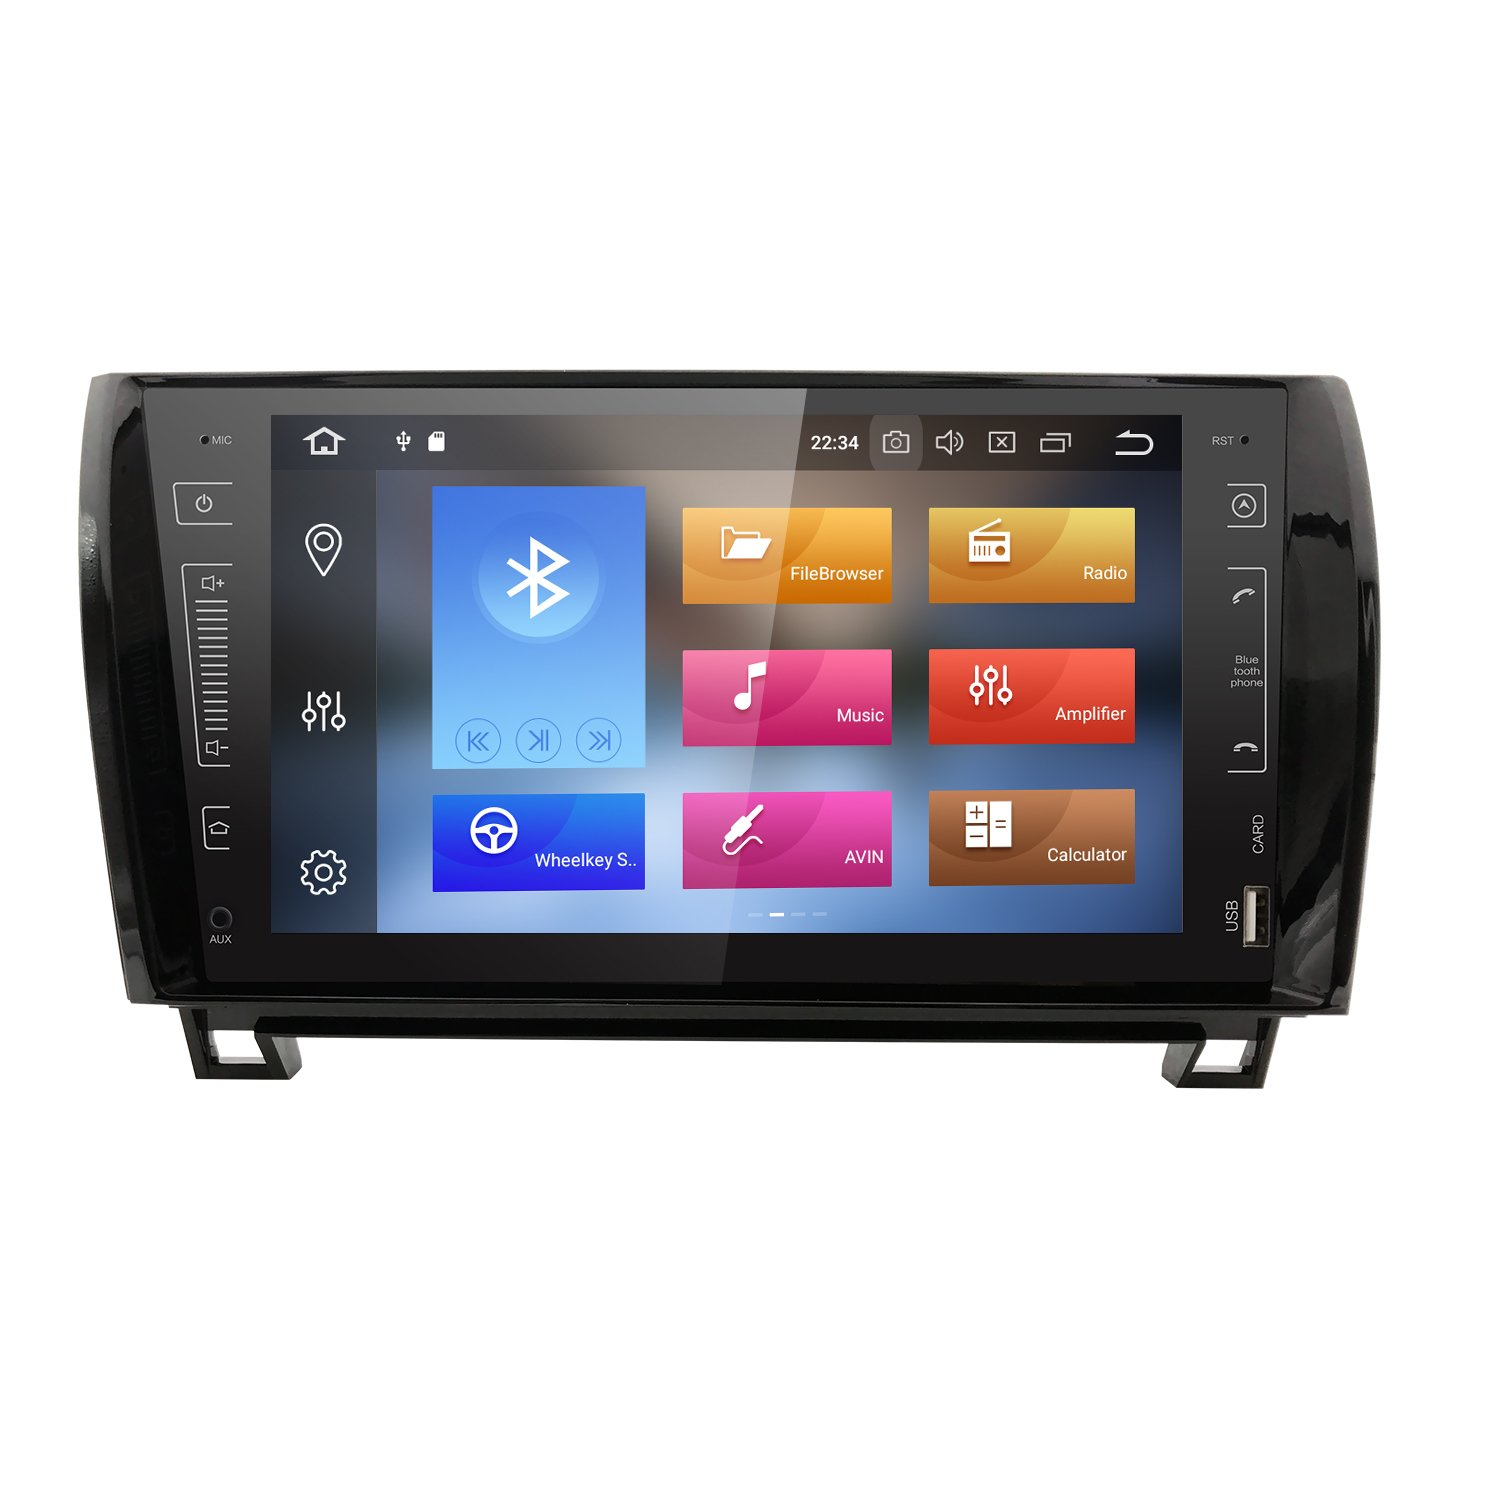 in Dash Android 8.0 Double Din 9 Inch Capacitive Touch Screen Car Stereo Video Receiver Player GPS Navigation with Bluetooth for Toyota Tundra Sequoia ...